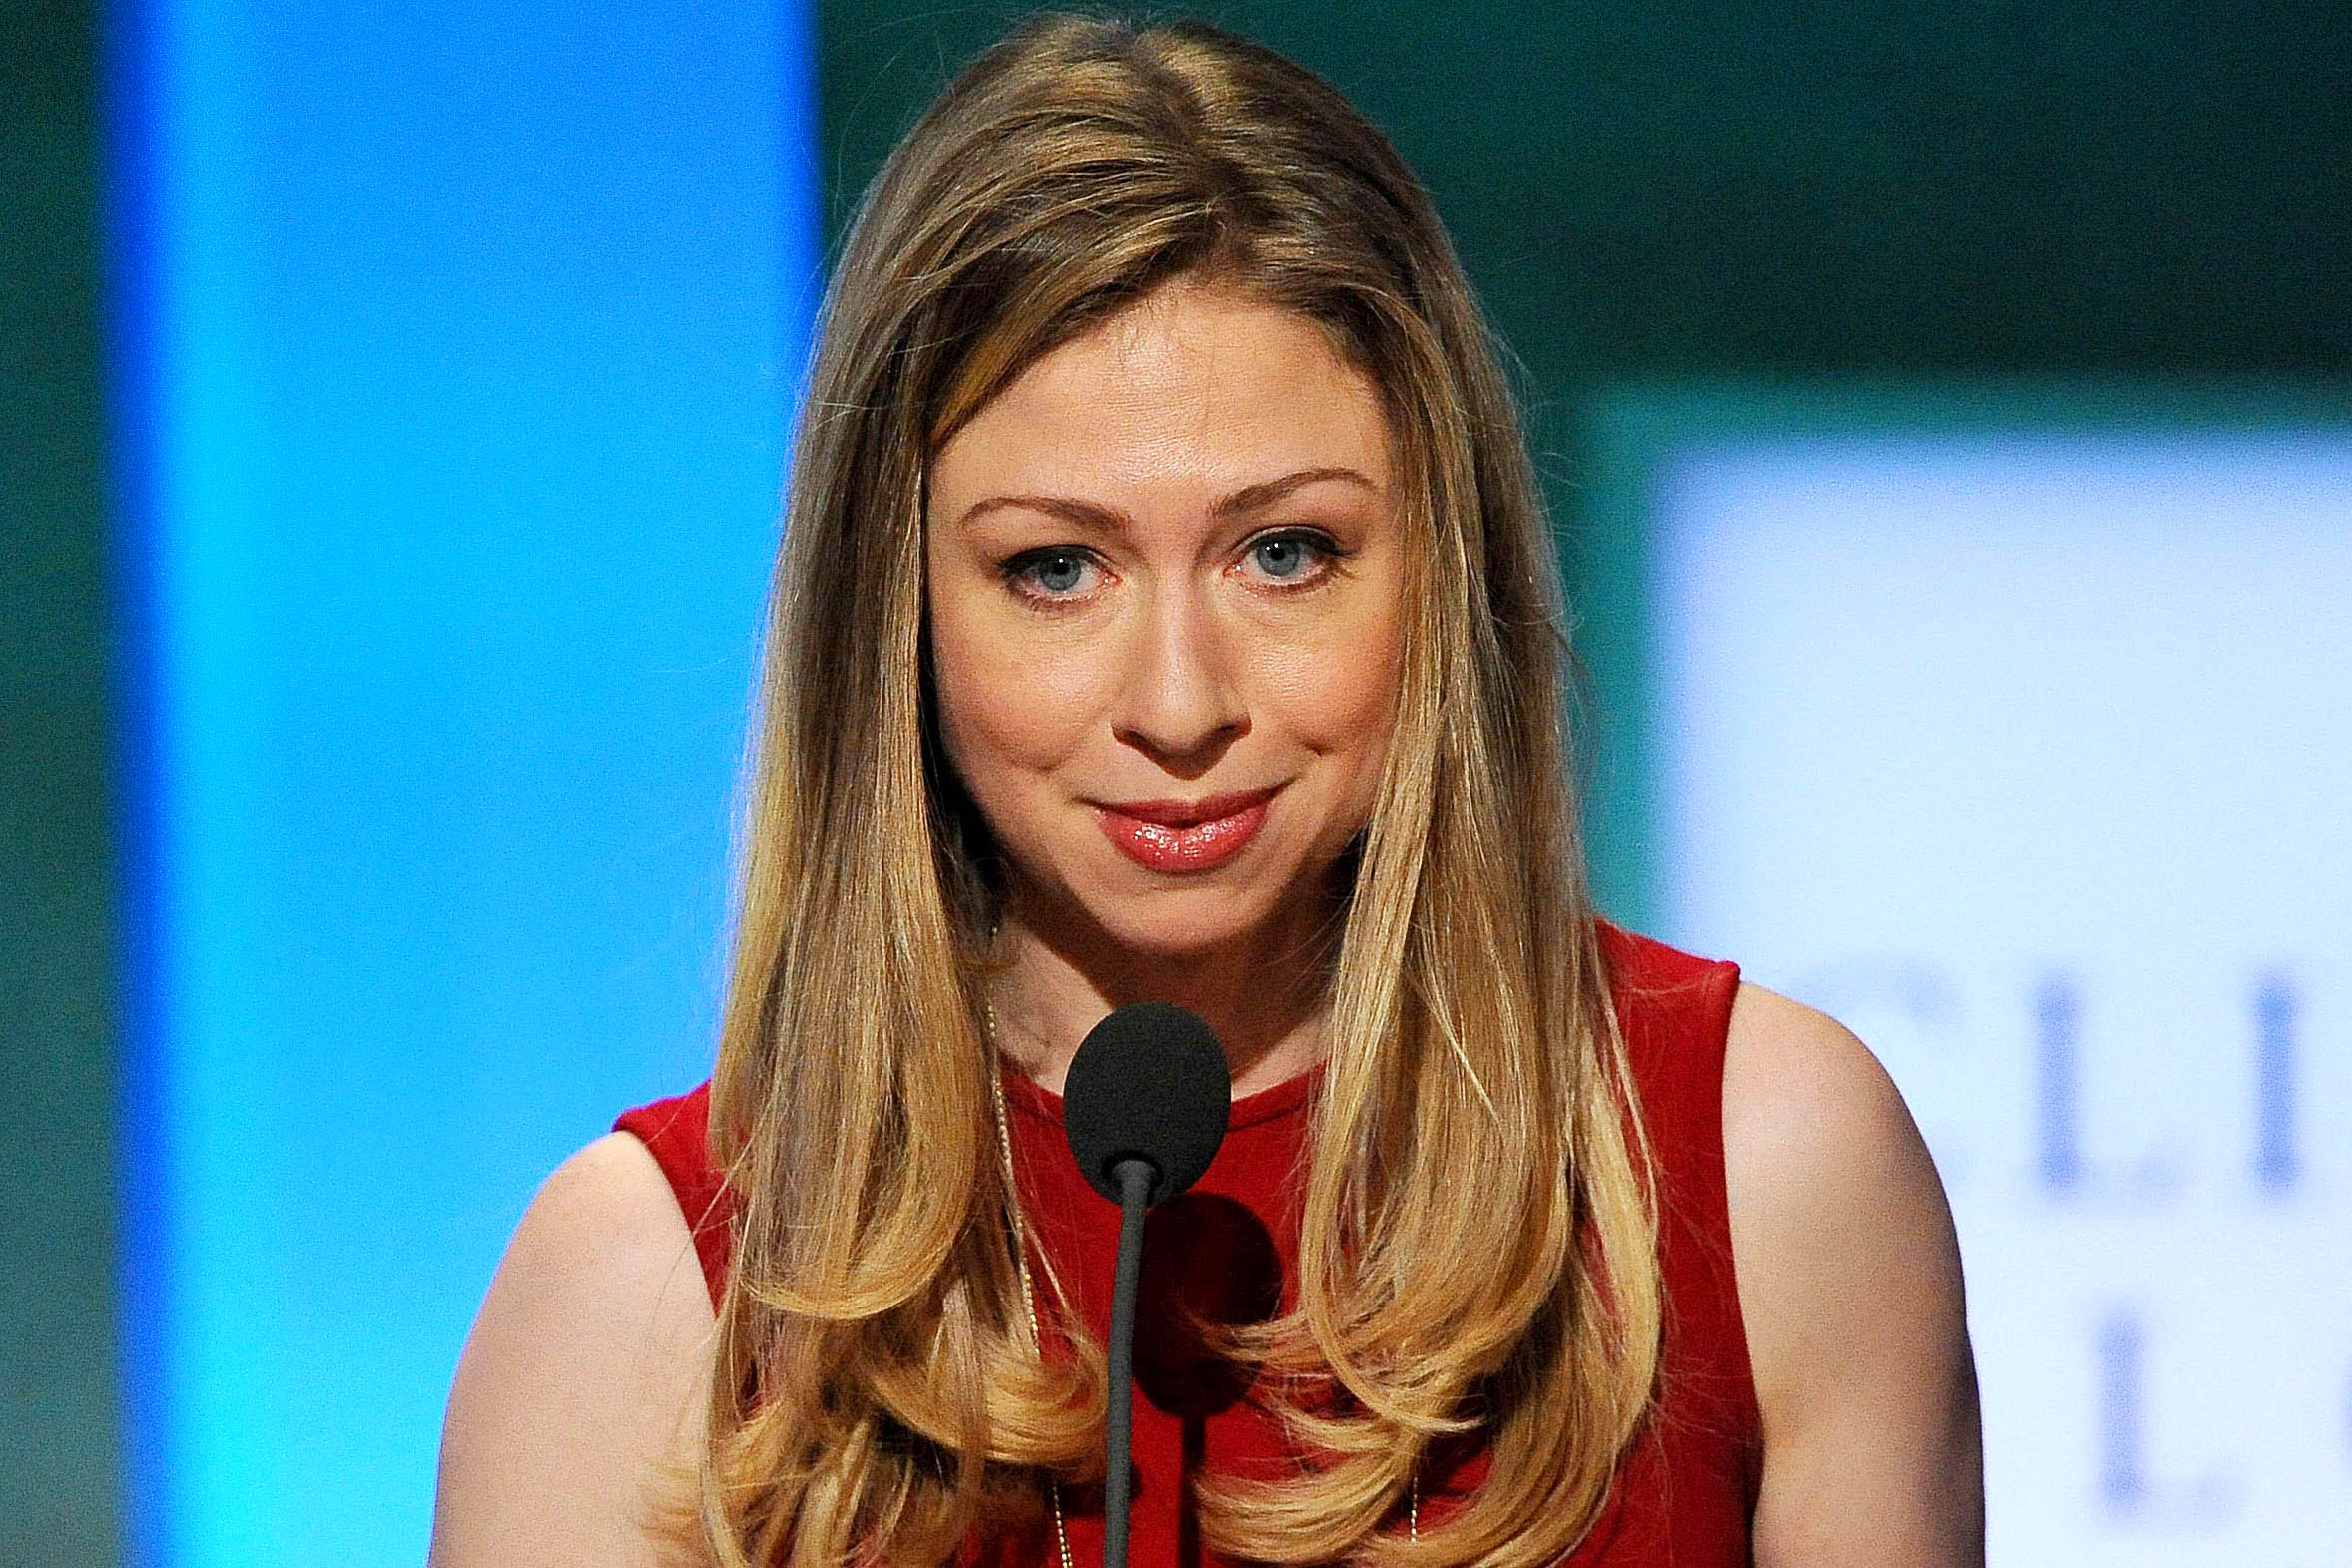 Please, No More Chelsea Clinton